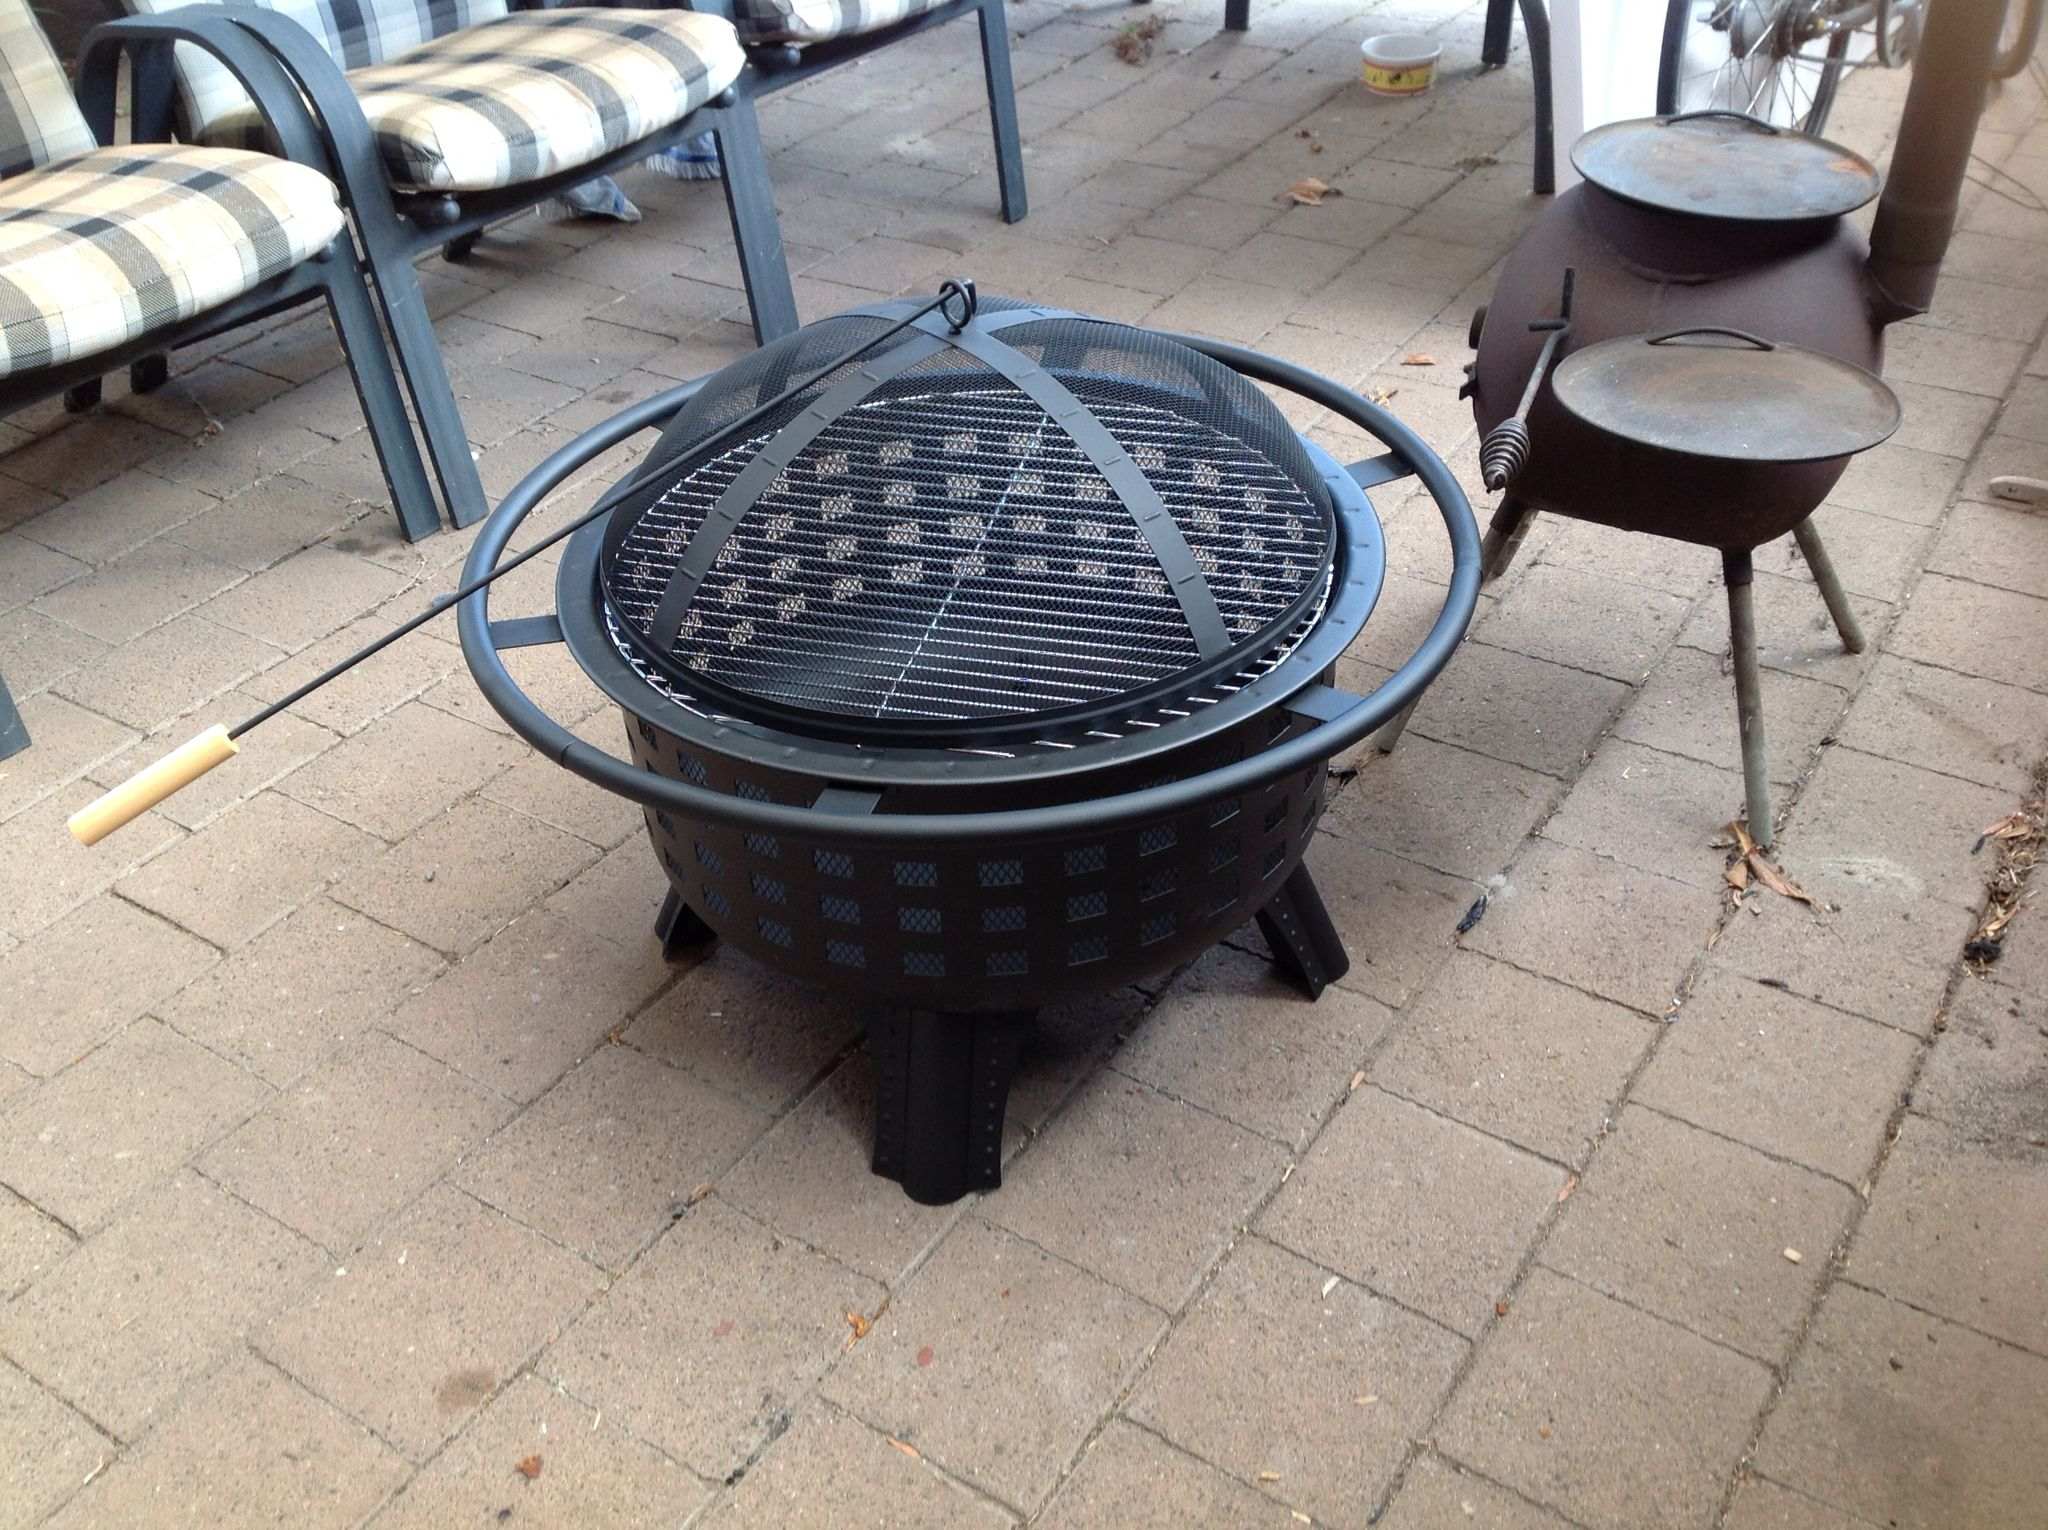 Barbecue Aldi My New Outdoor Firepit Grill 89 00 At Aldi Outdoors In 2019